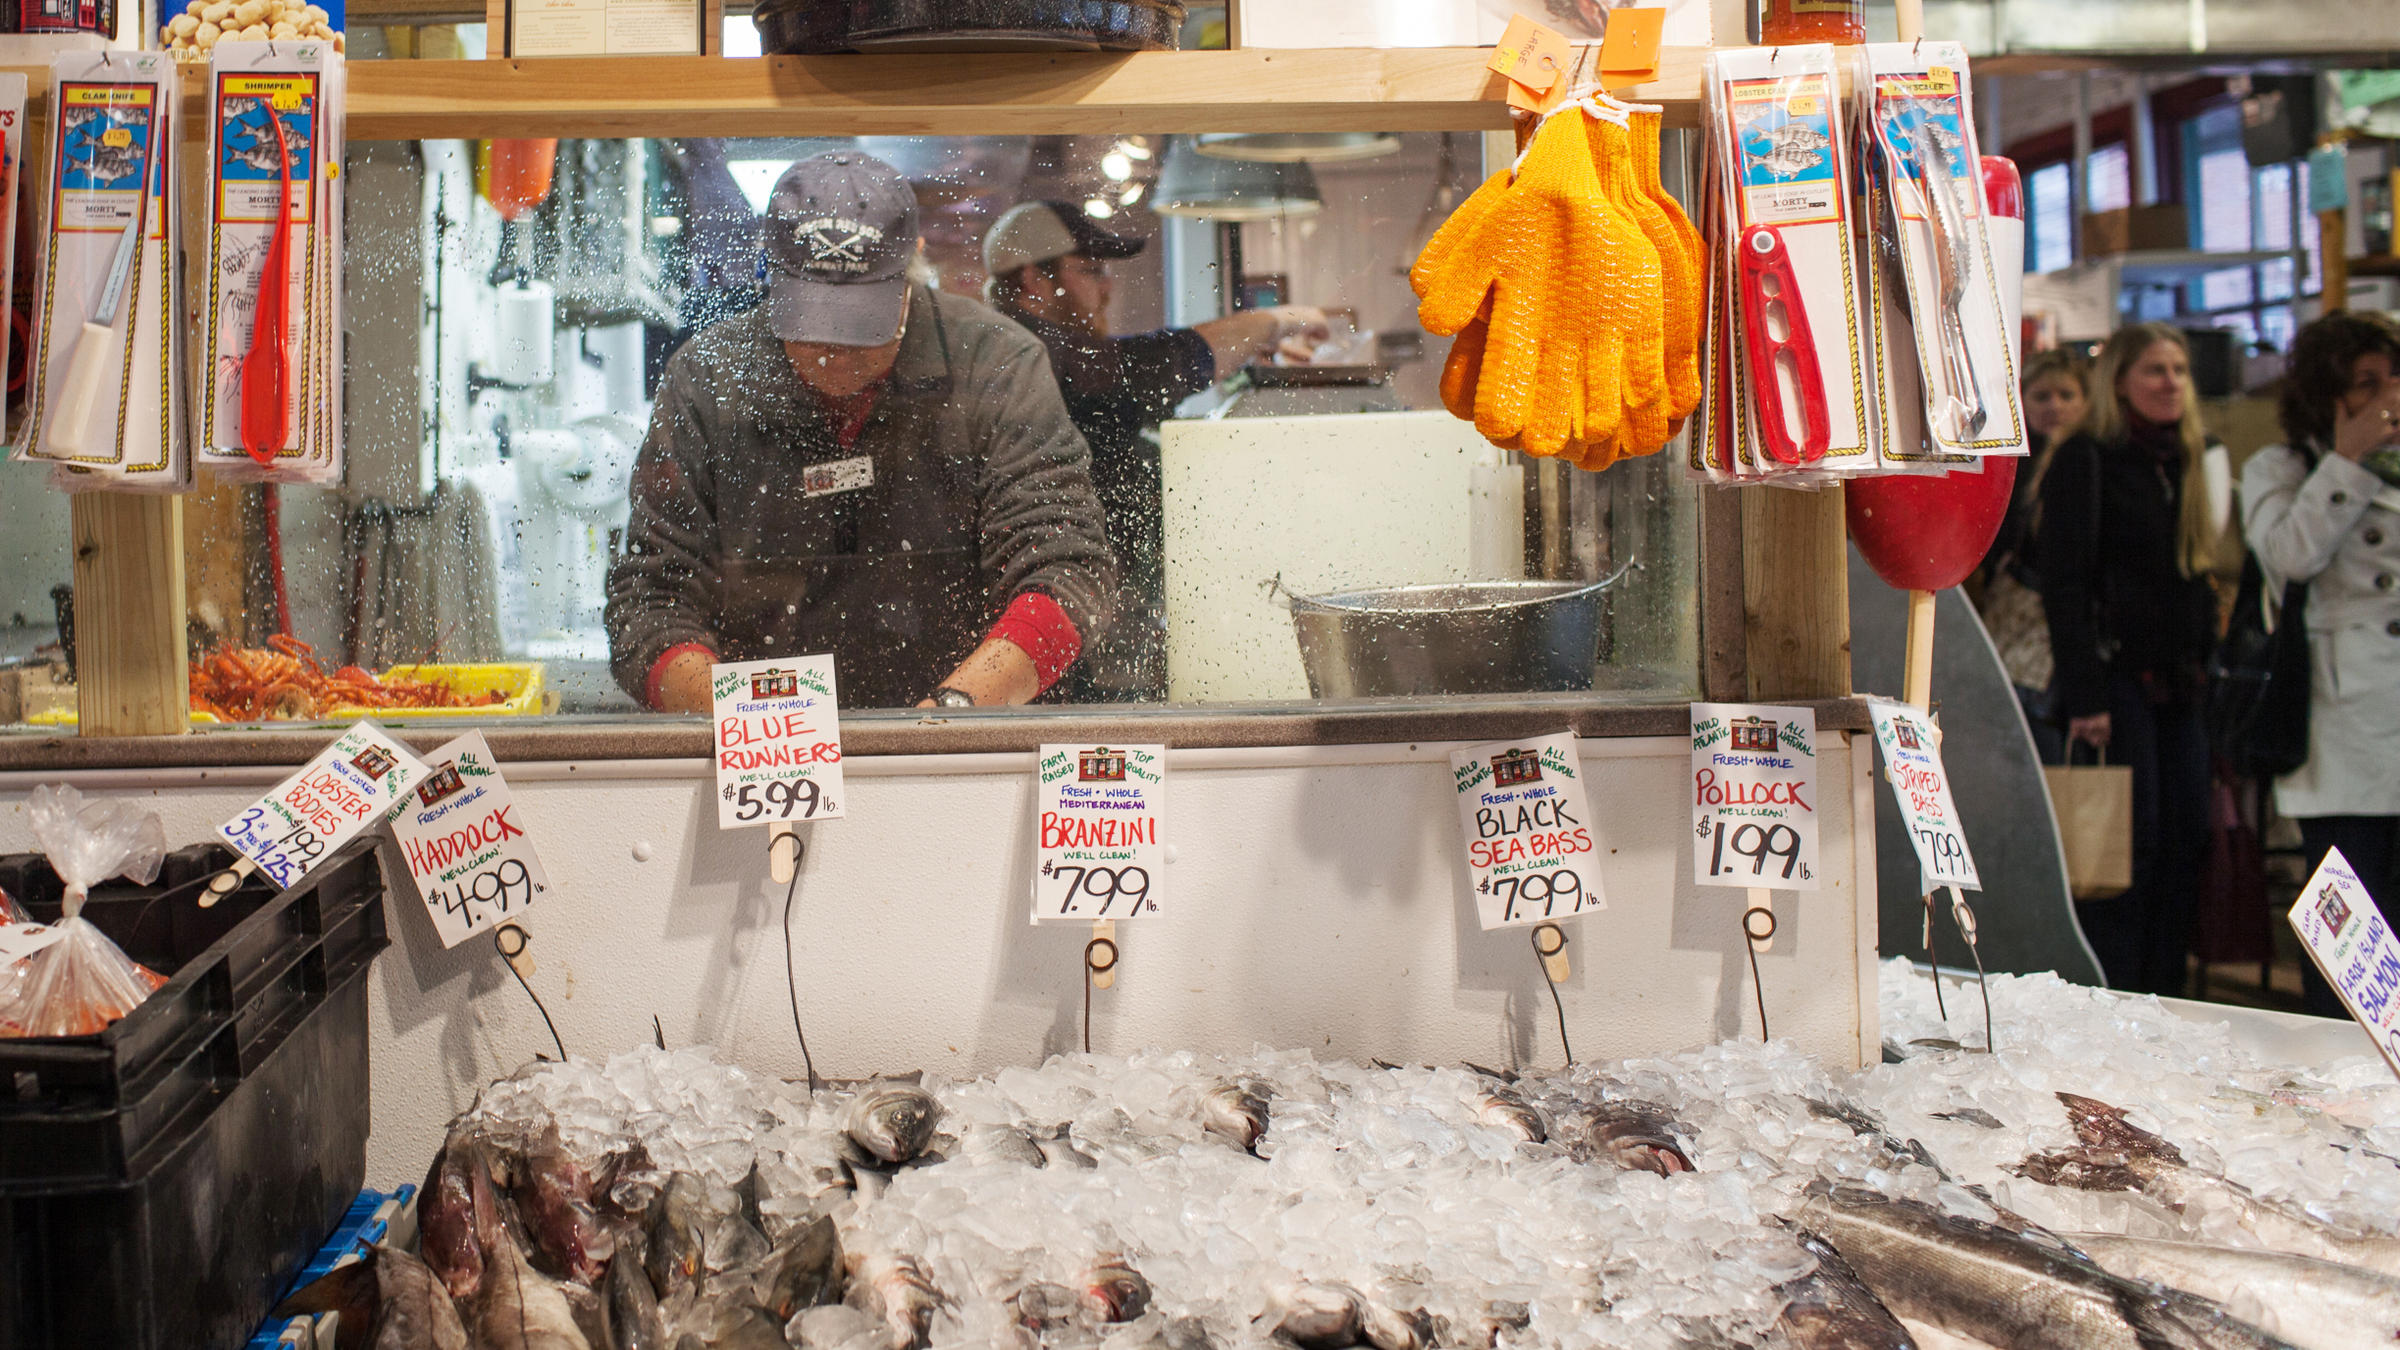 Do fish names encourage fishy business wlrn for Fish market portland maine